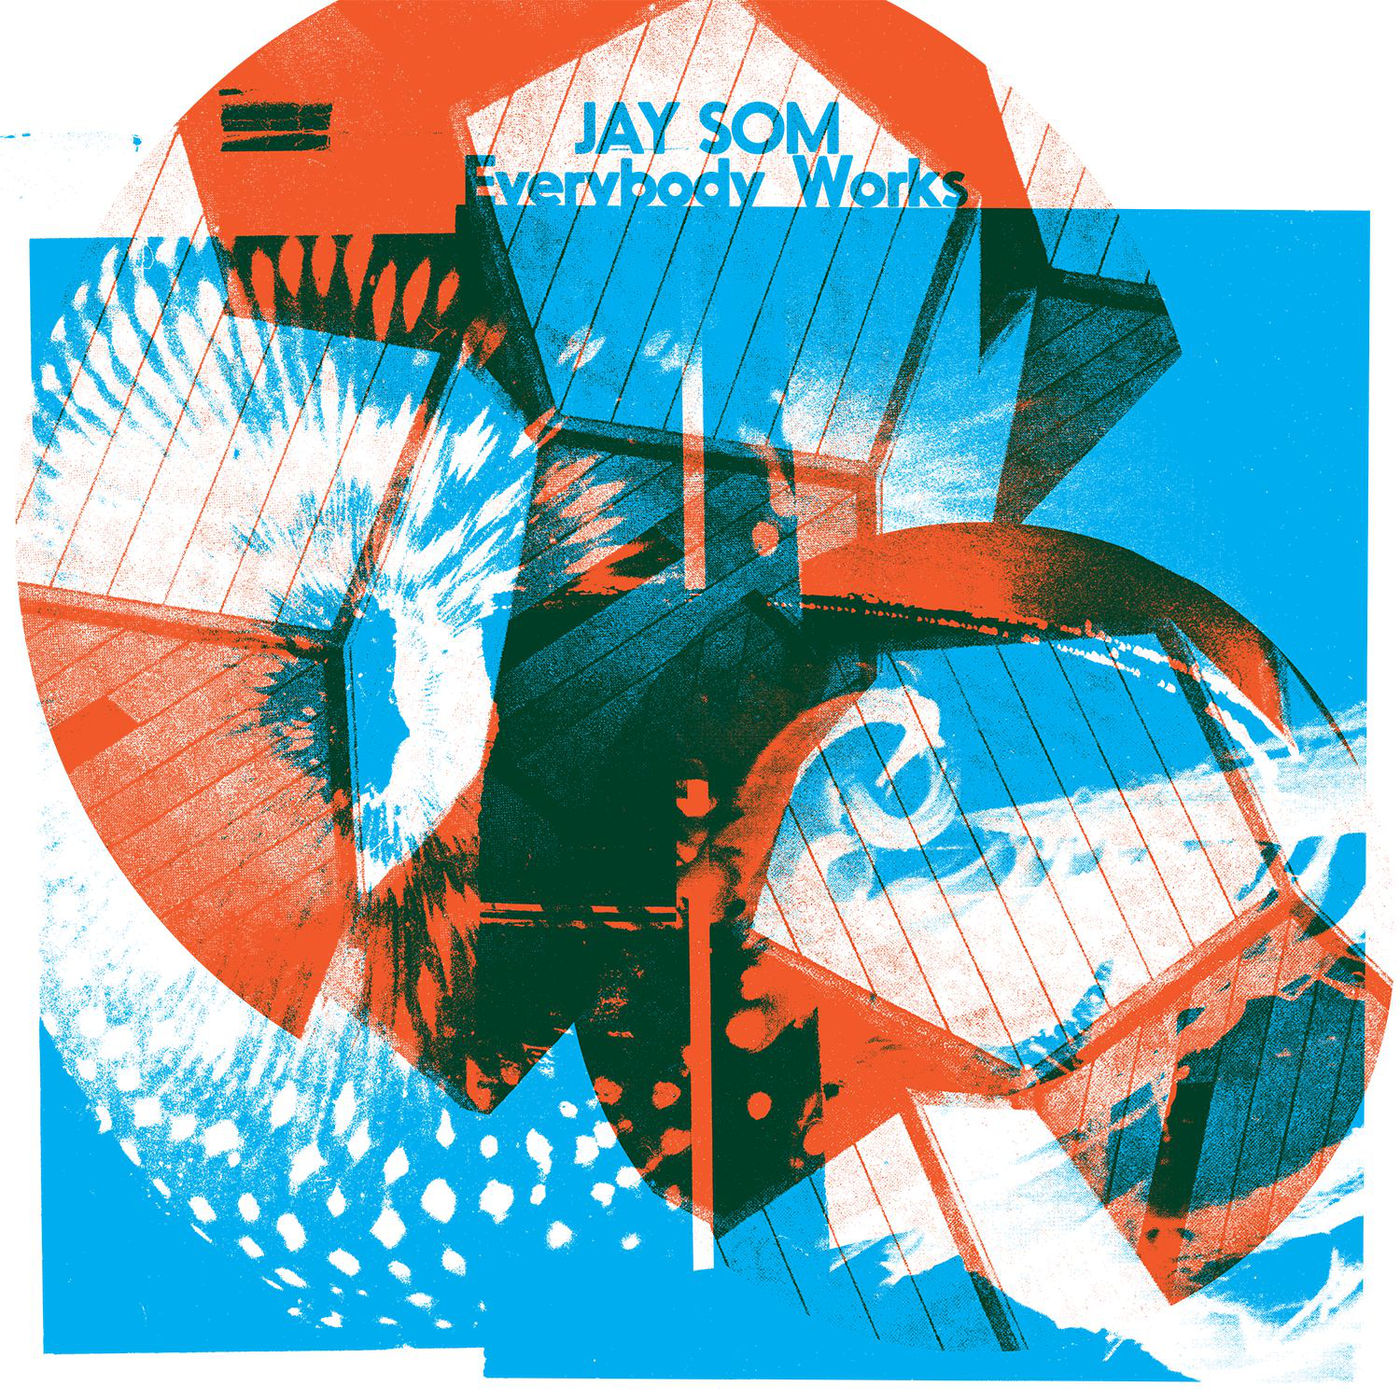 Everybody Works - Jay Som